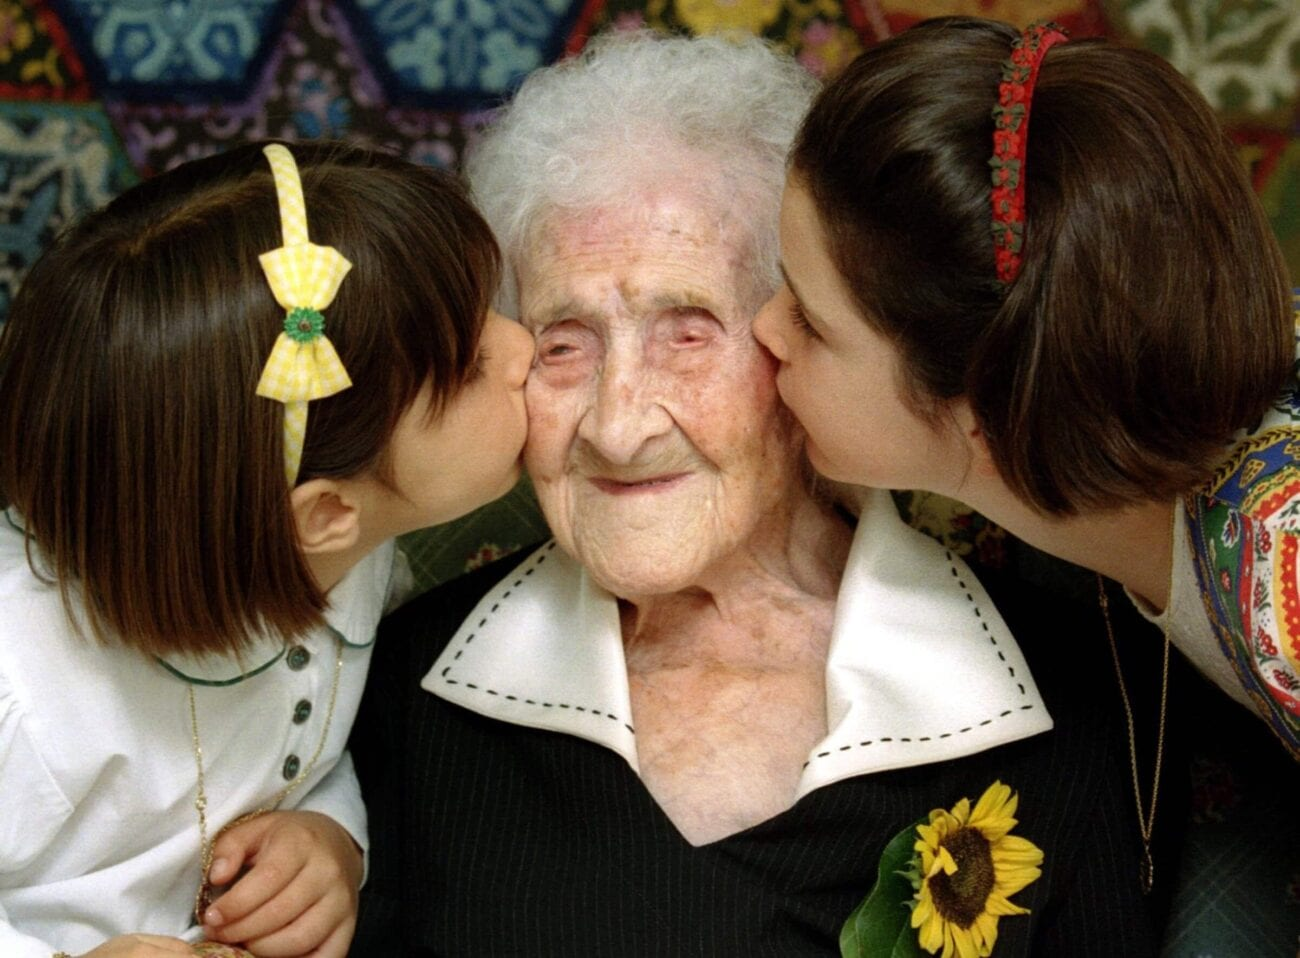 Jeanne Louise Calment was named the longest living person in 1995 when she turned 120 years old. Take a gander at her long life and story!